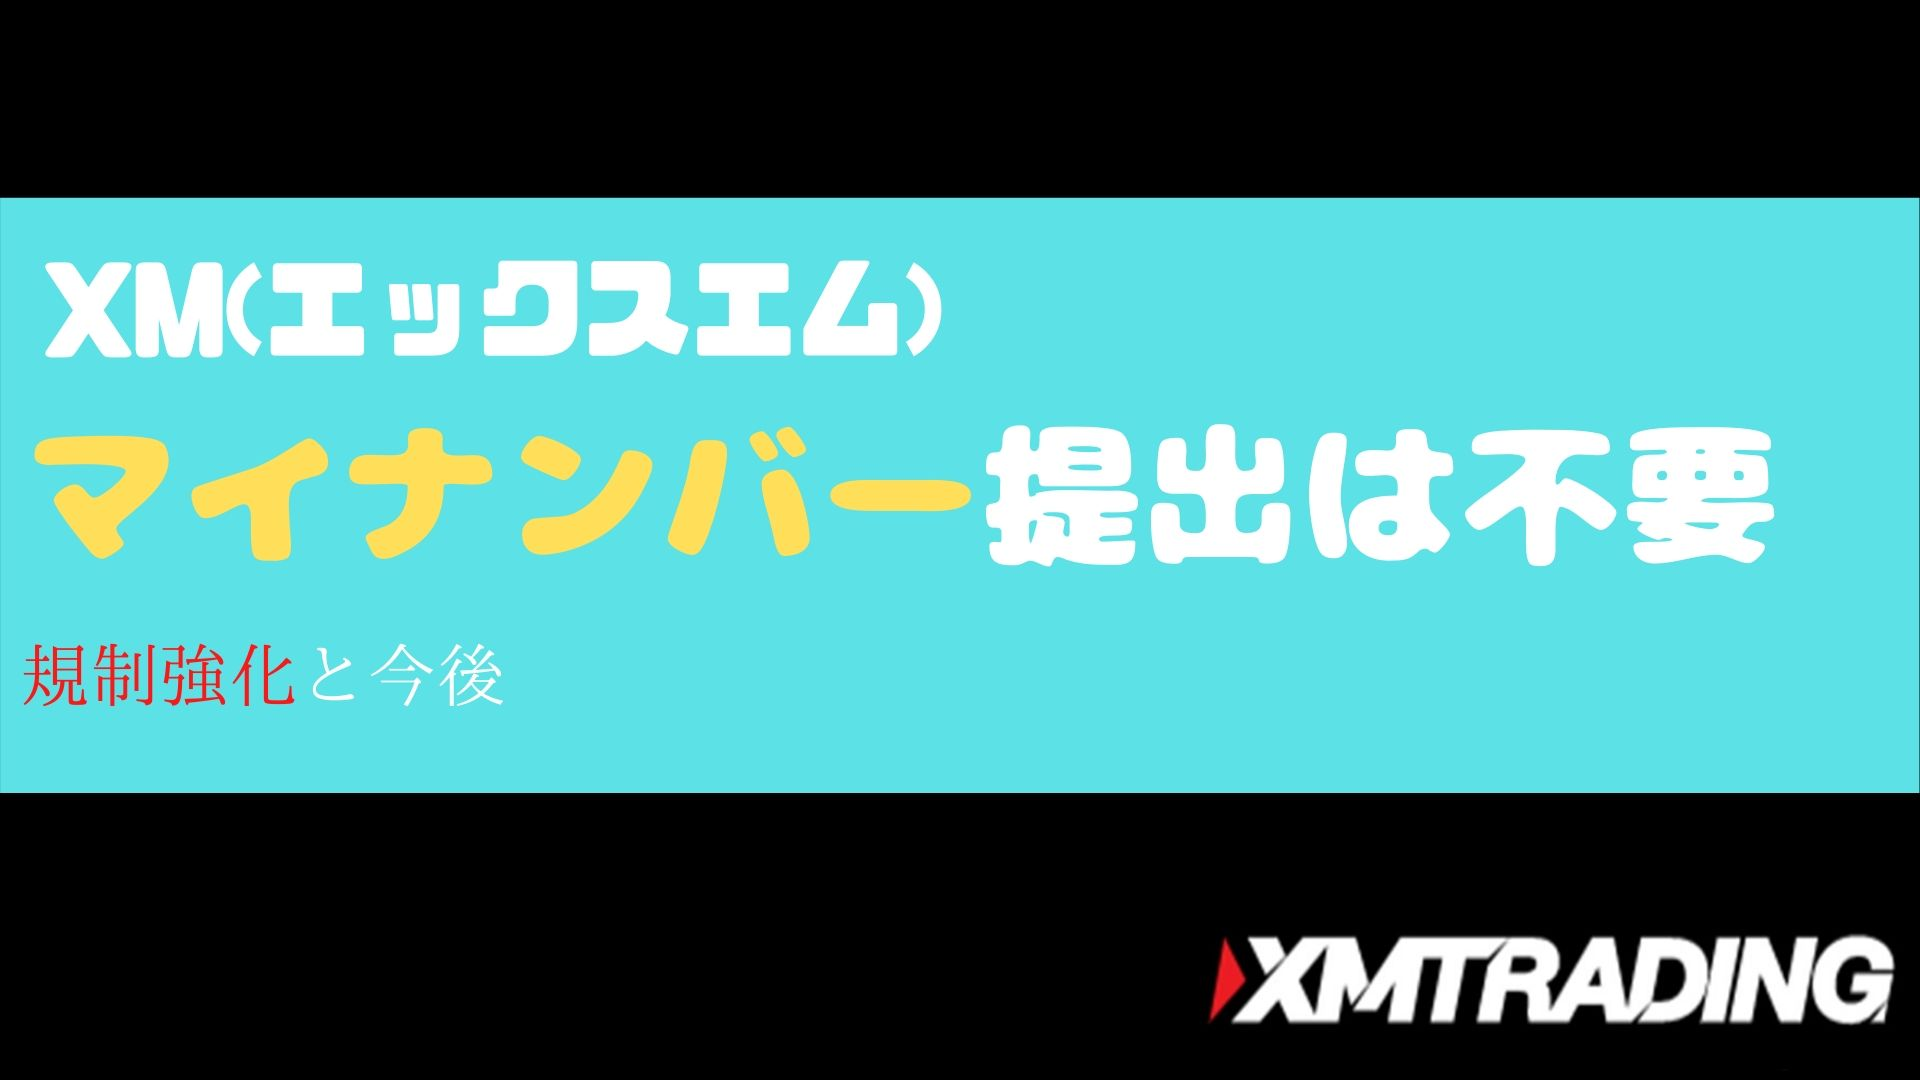 xm-mynumber-title